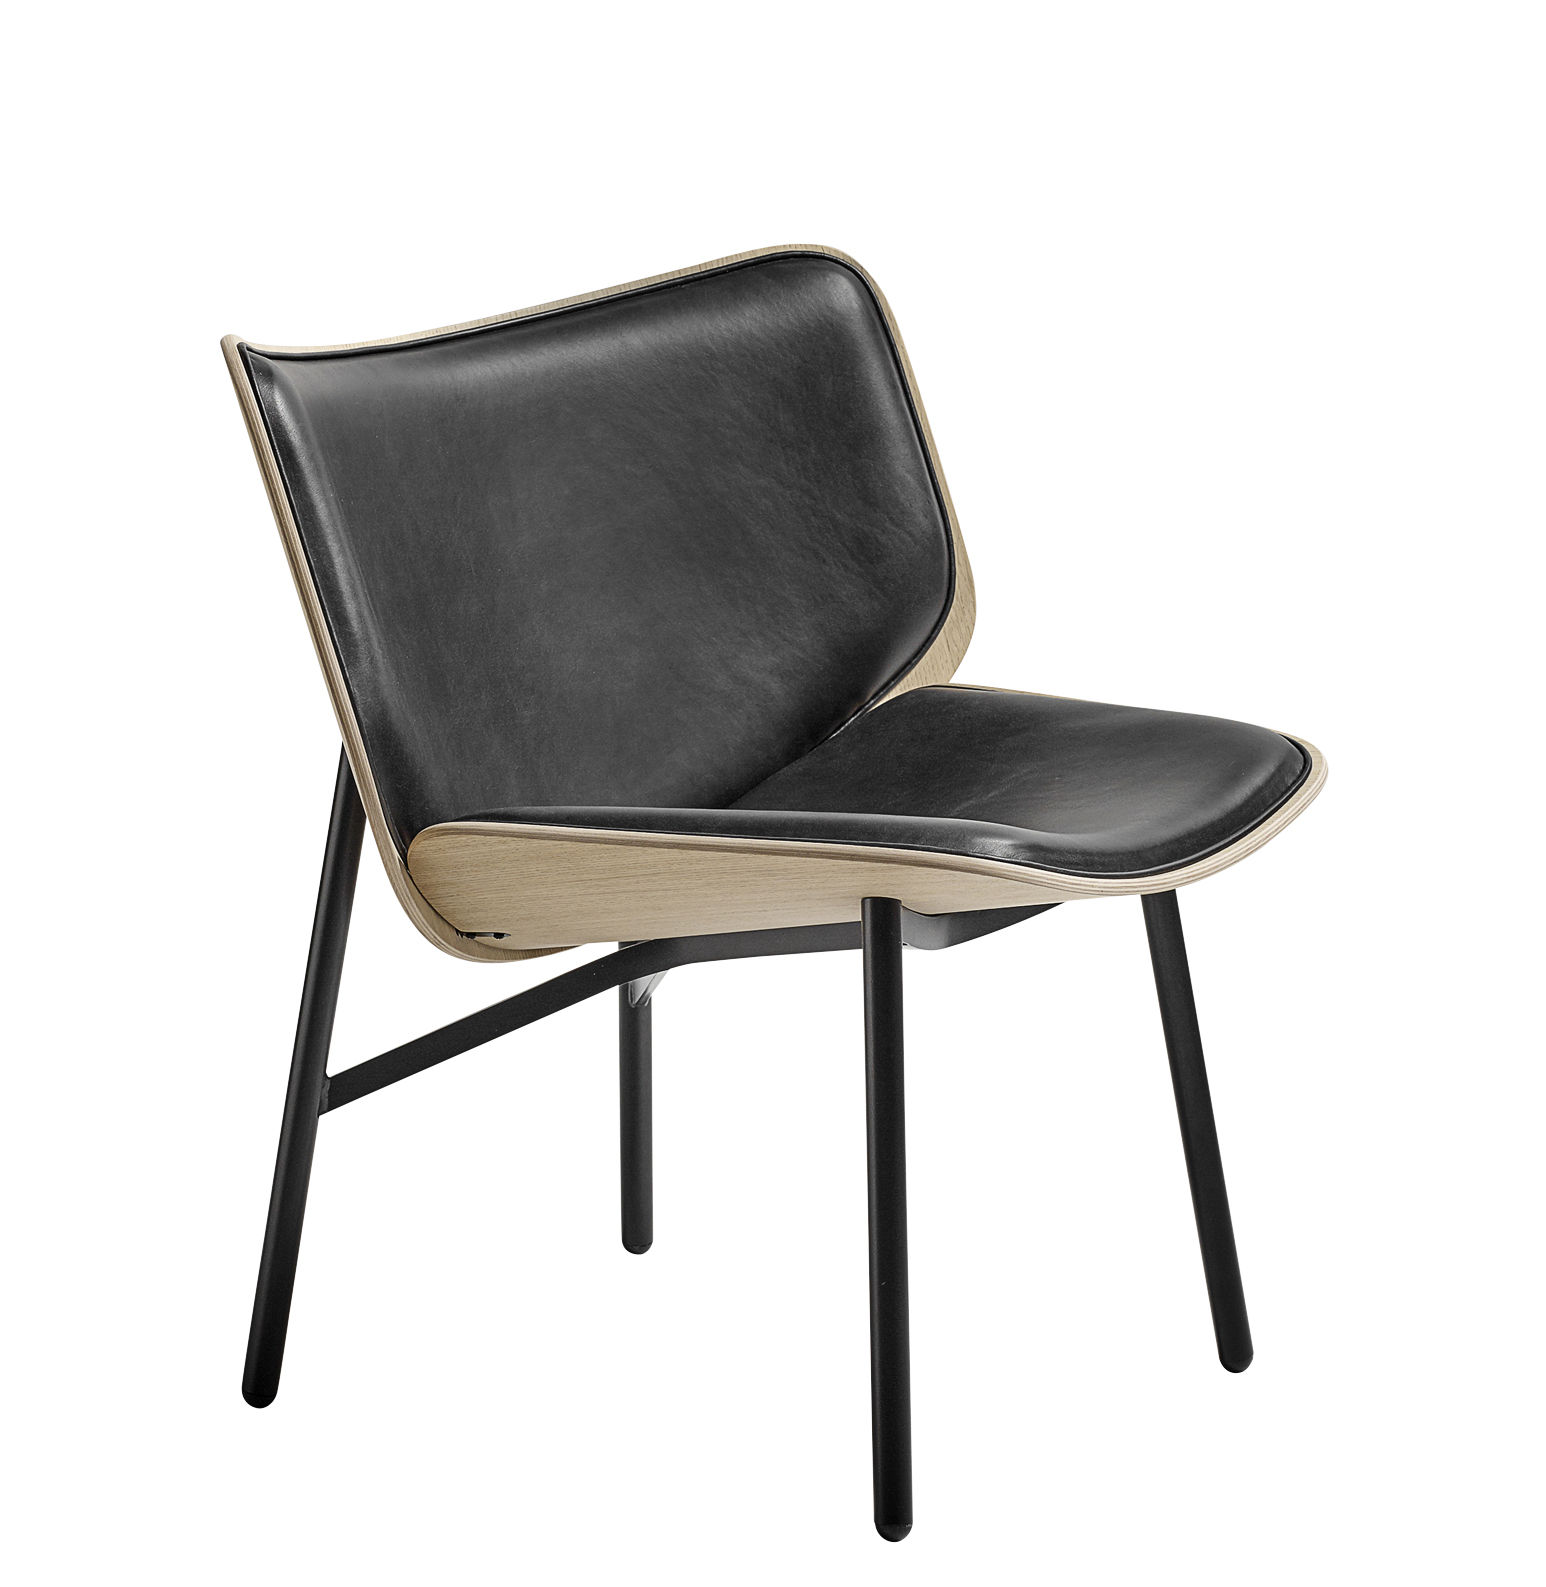 Furniture - Armchairs - Dapper Padded armchair - / Leather by Hay - Black - Epoxy lacquered steel, Foam, Leather, Natural oak plywood